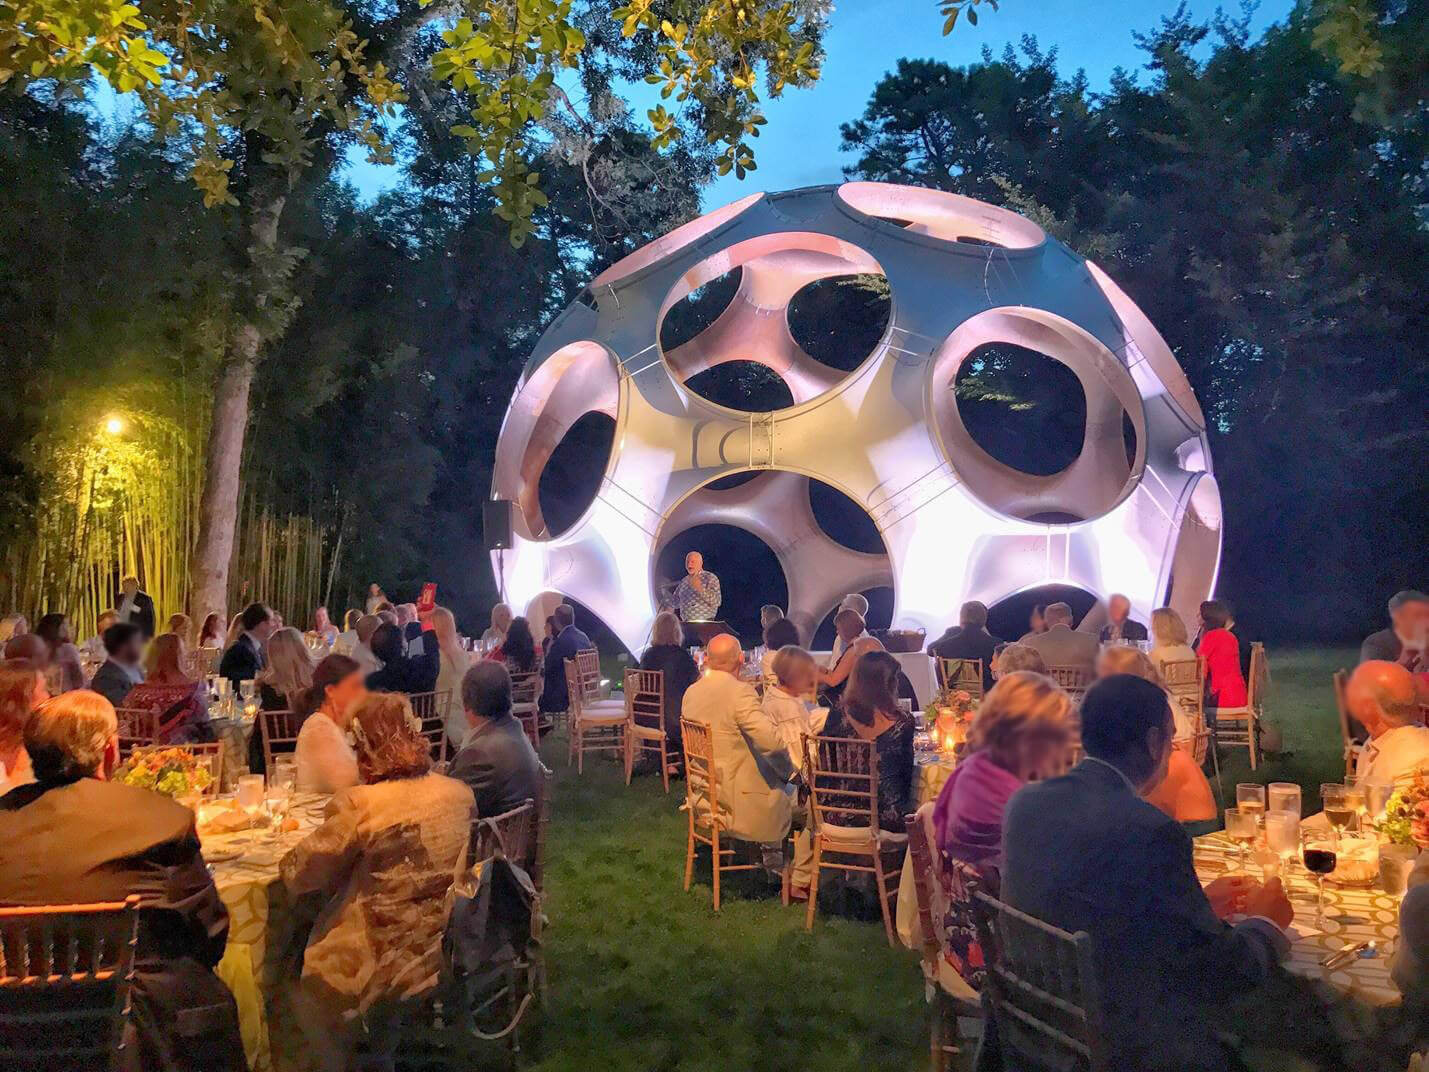 TIGER 21 HOSTS 4TH ANNUAL HAMPTONS EVENT